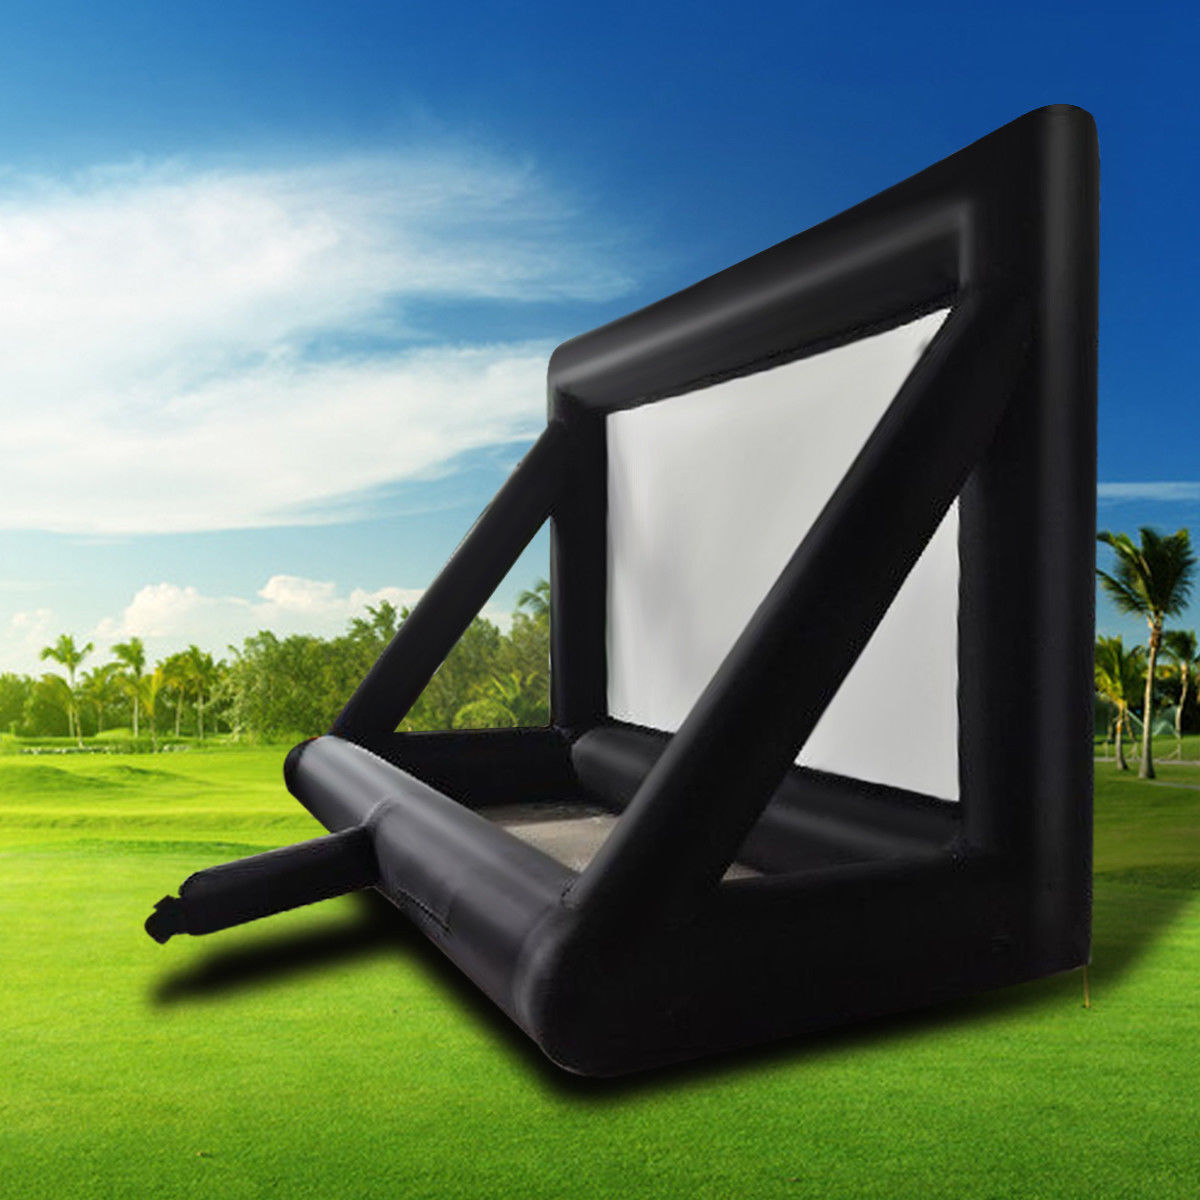 8x6m 26ftx20ft 16:9 Inflatable Projection Movie Display Screen Home Backyard Theater